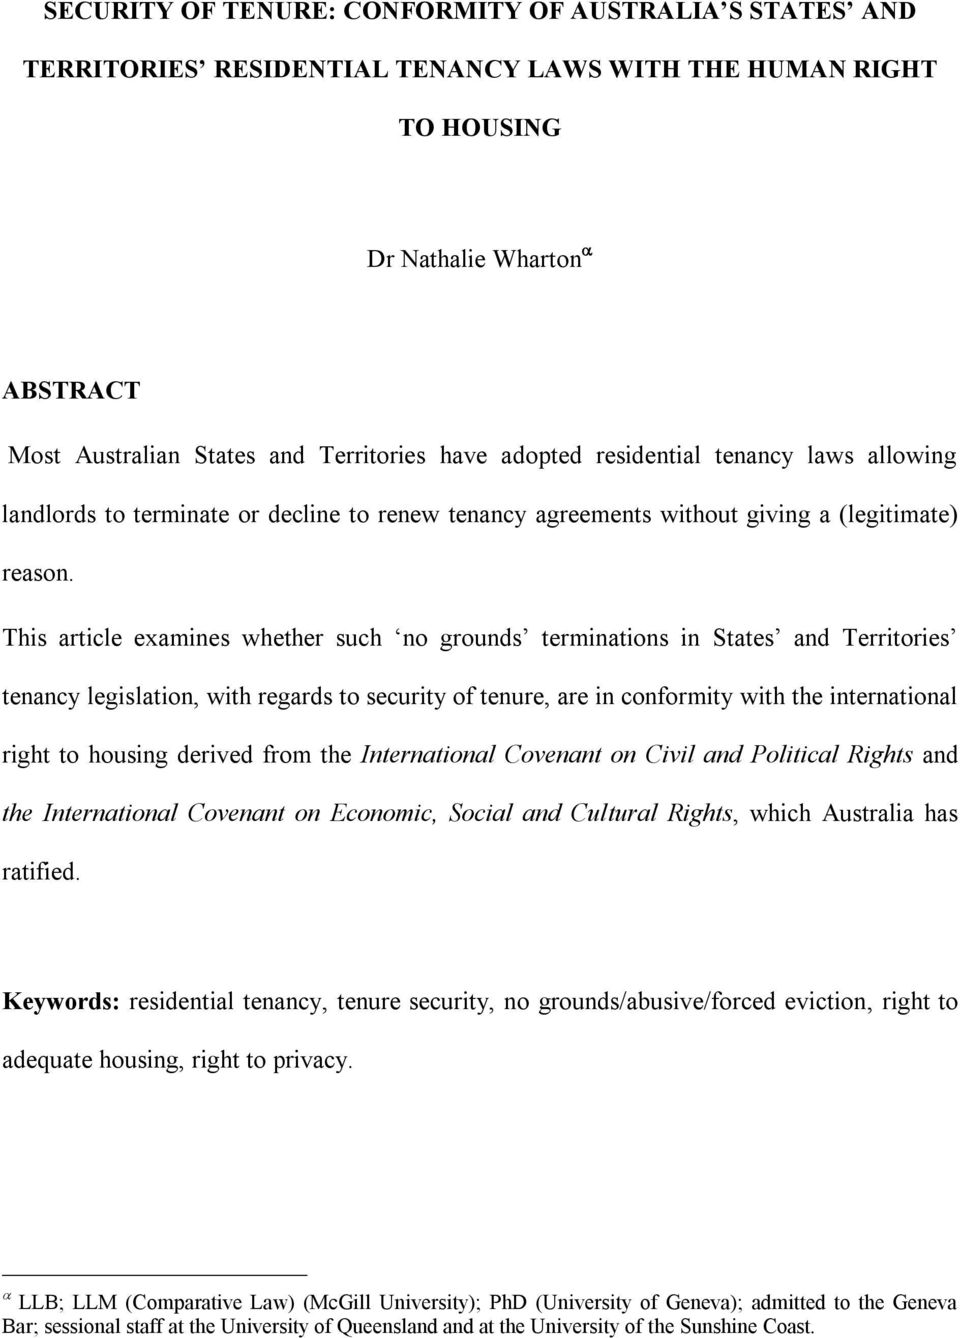 Security Of Tenure Conformity Of Australia S States And Territories